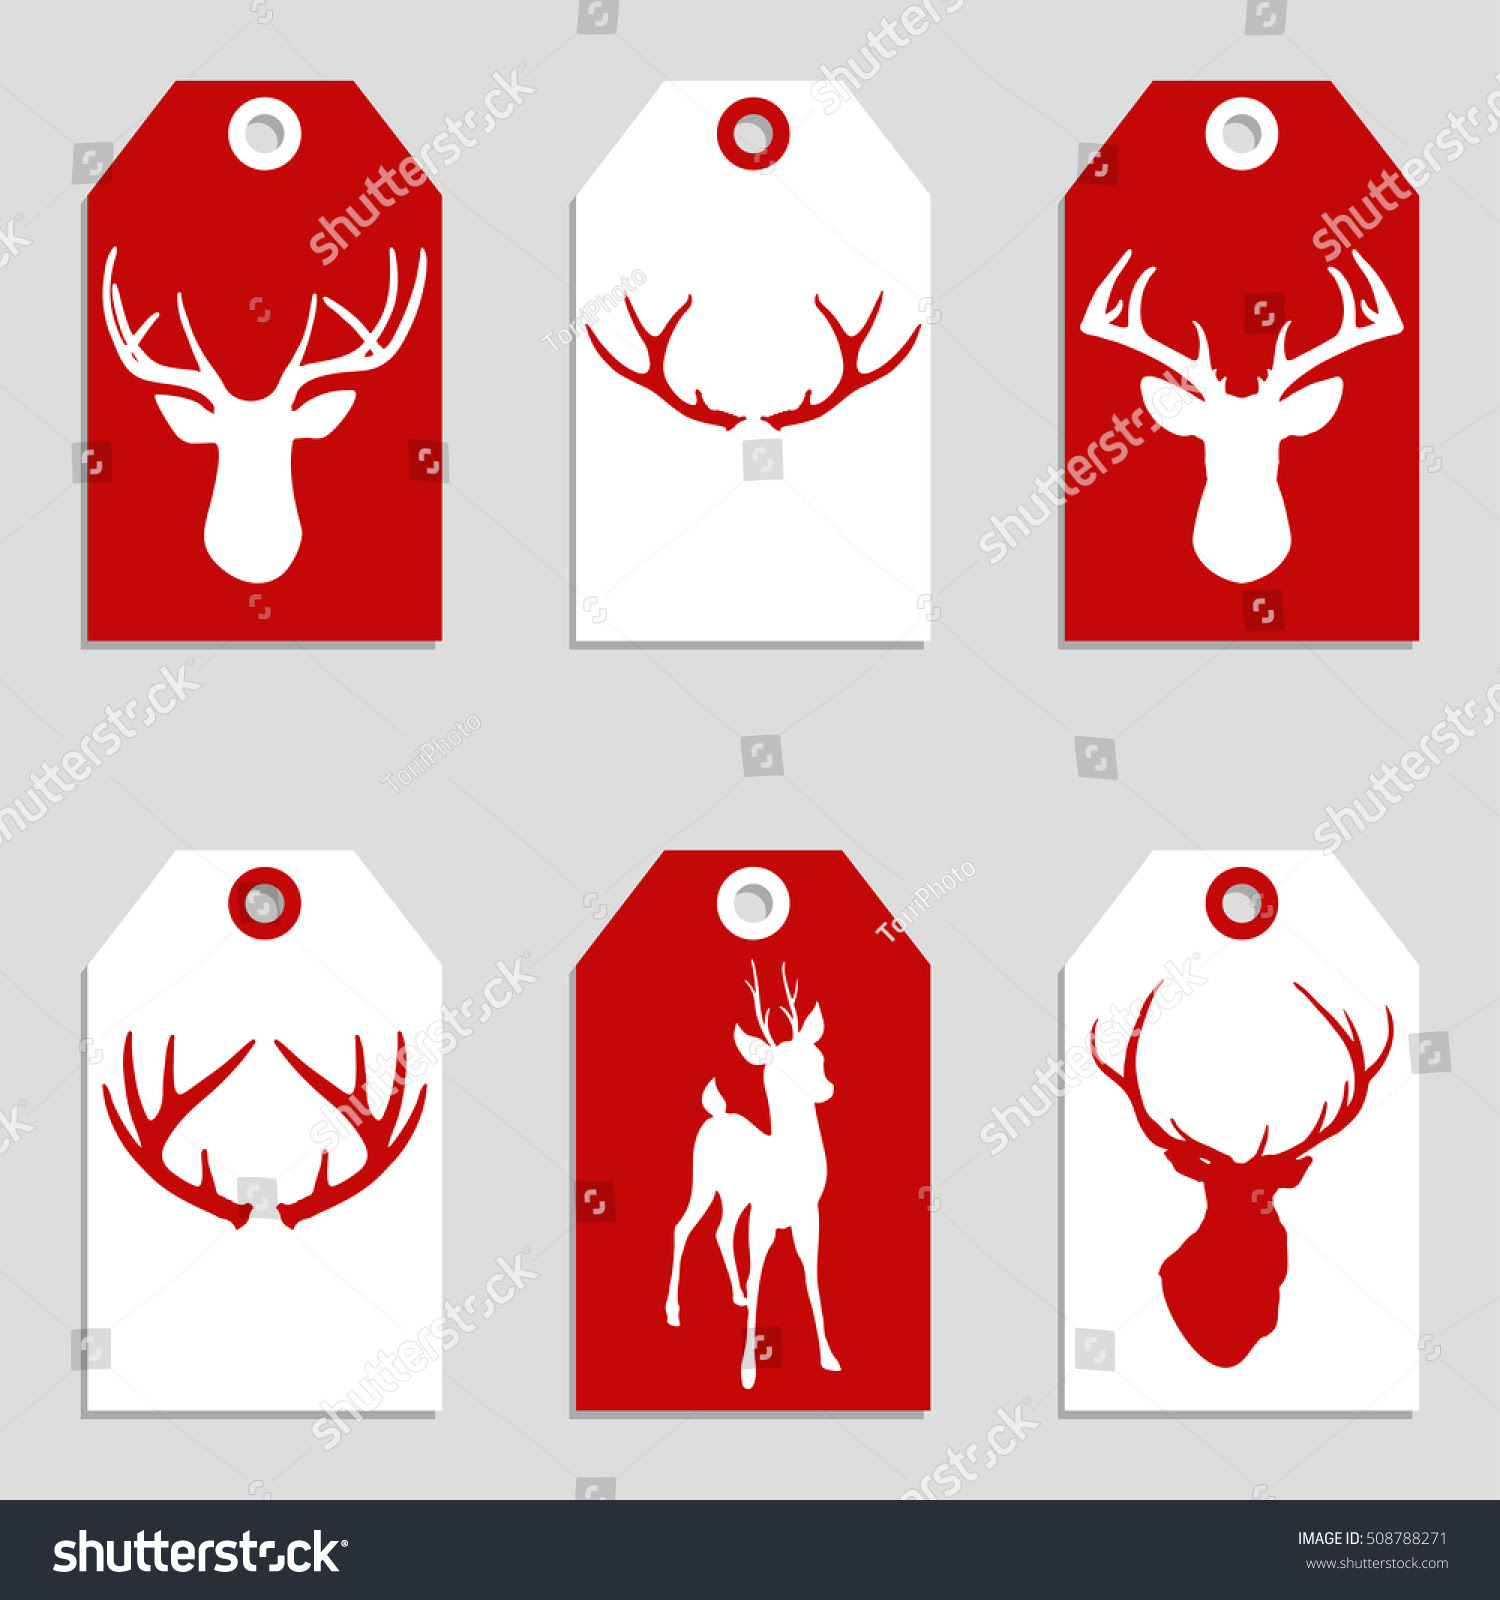 http://www.shutterstock.com/pic-508788271/stock-vector-set-of-red-and-white-christmas-and-new-year-gift-tags-with-deer-and-antlers-vector-illustration-eps-8.html?